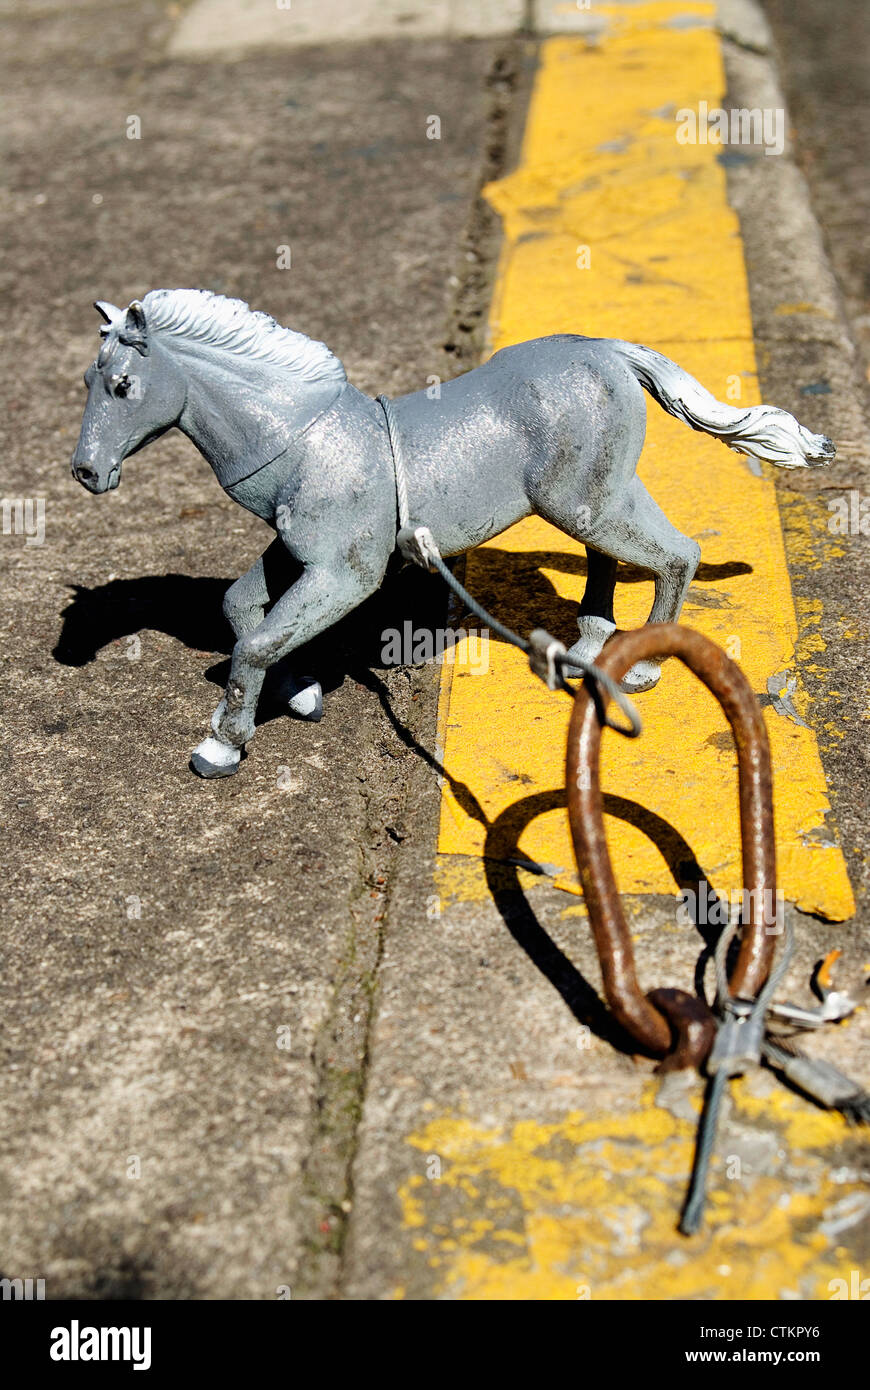 A toy horse tied up to an old horse tie in Portland, Oregon. Known as the 'horse project' taking place all - Stock Image